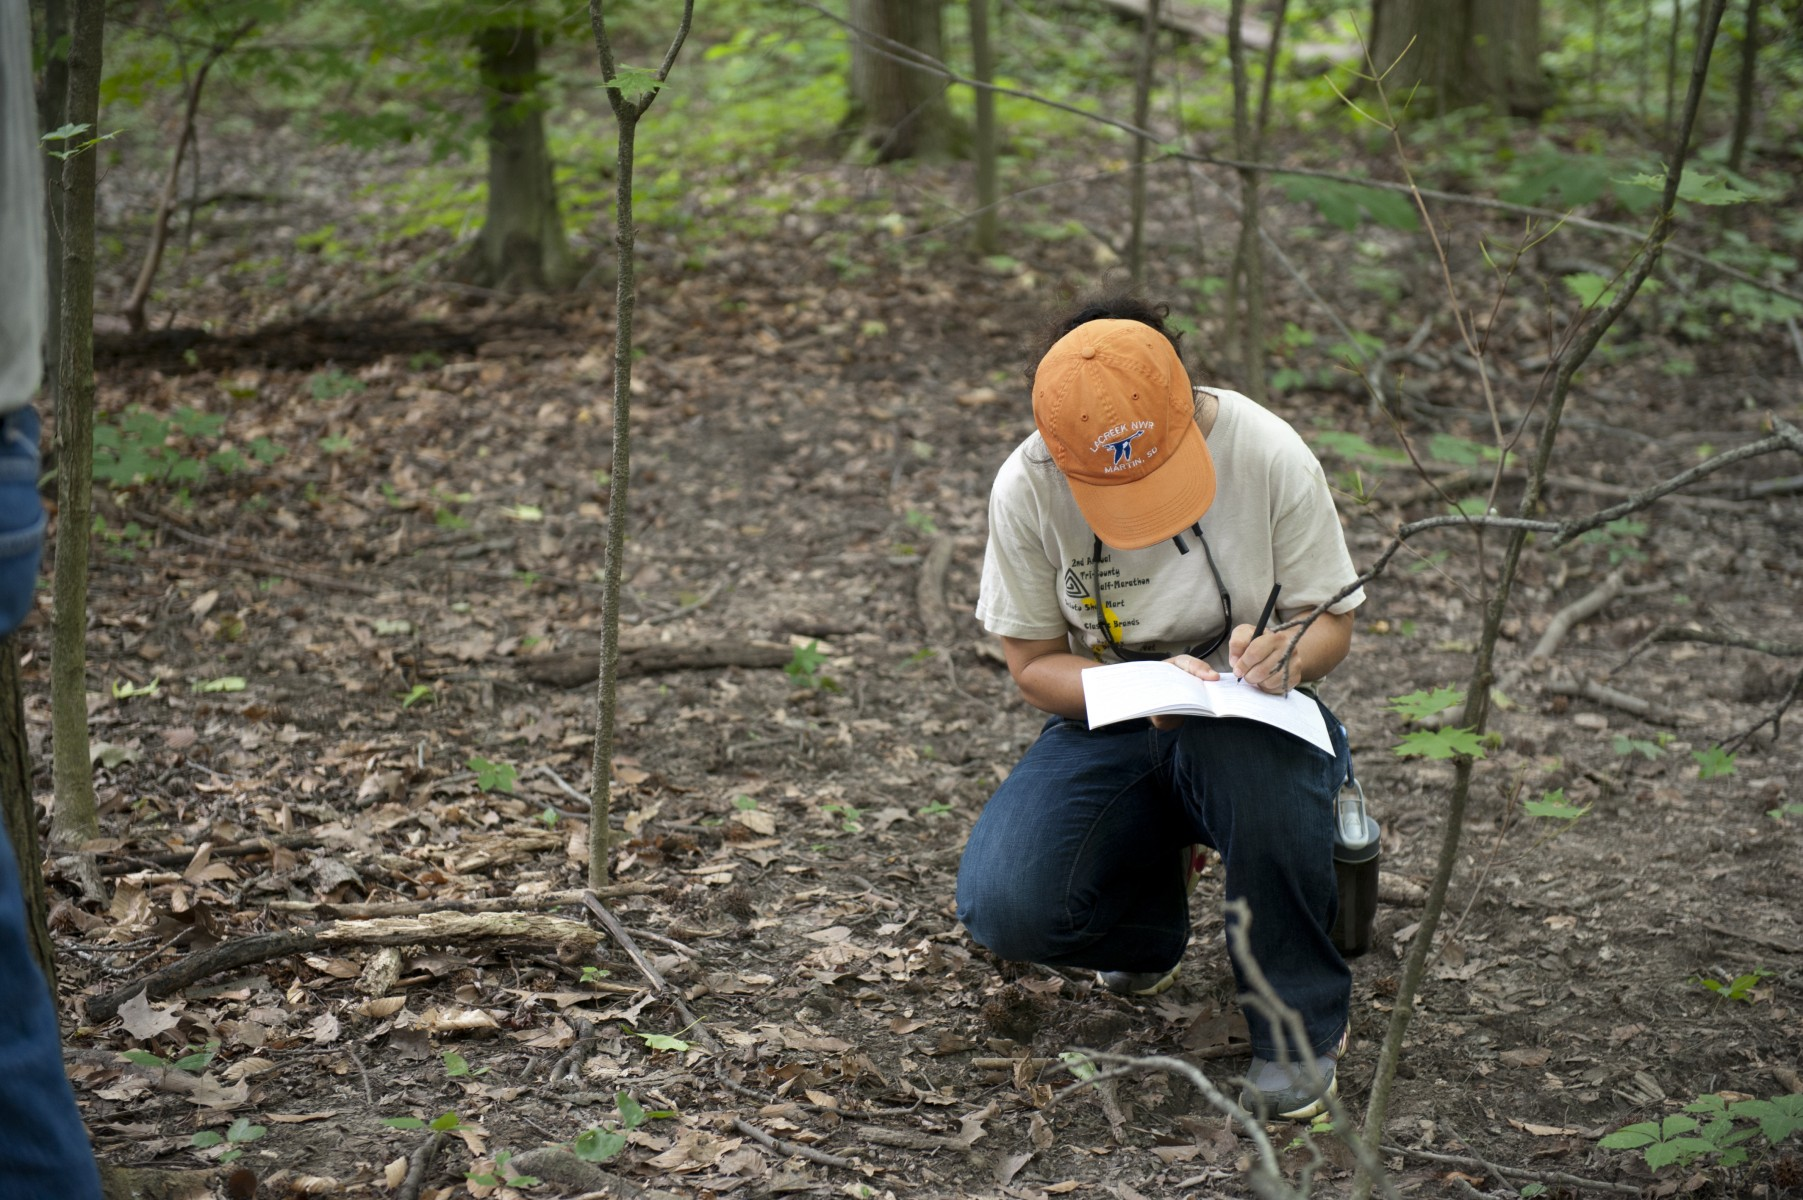 Among Extension's many programs is a tree-identification seminar led by forestry experts.